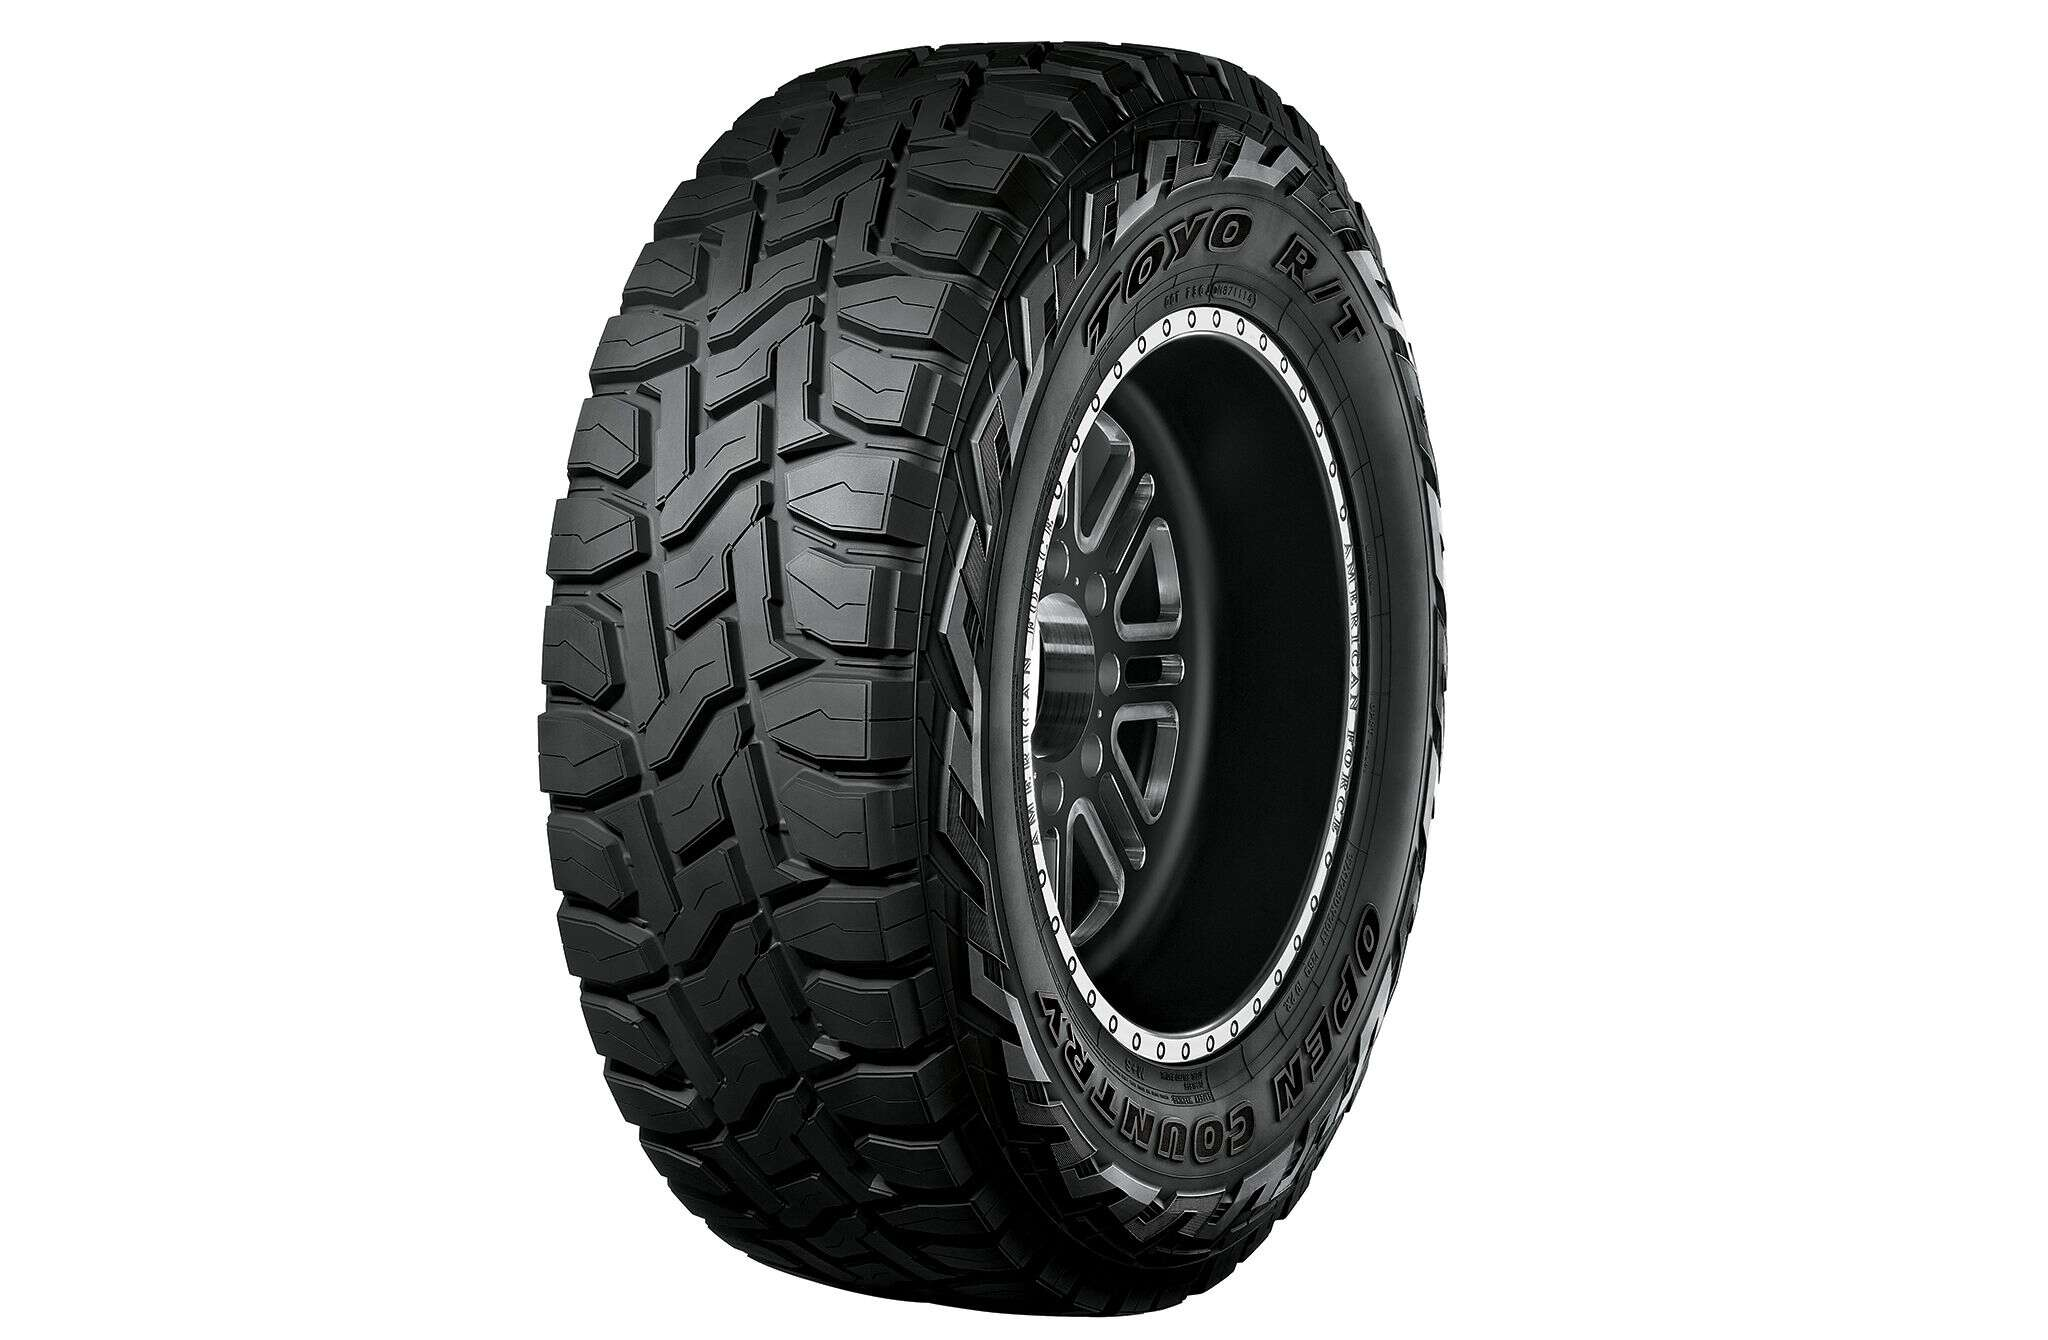 toyo open country r t 5 000 mile tire review the drive. Black Bedroom Furniture Sets. Home Design Ideas